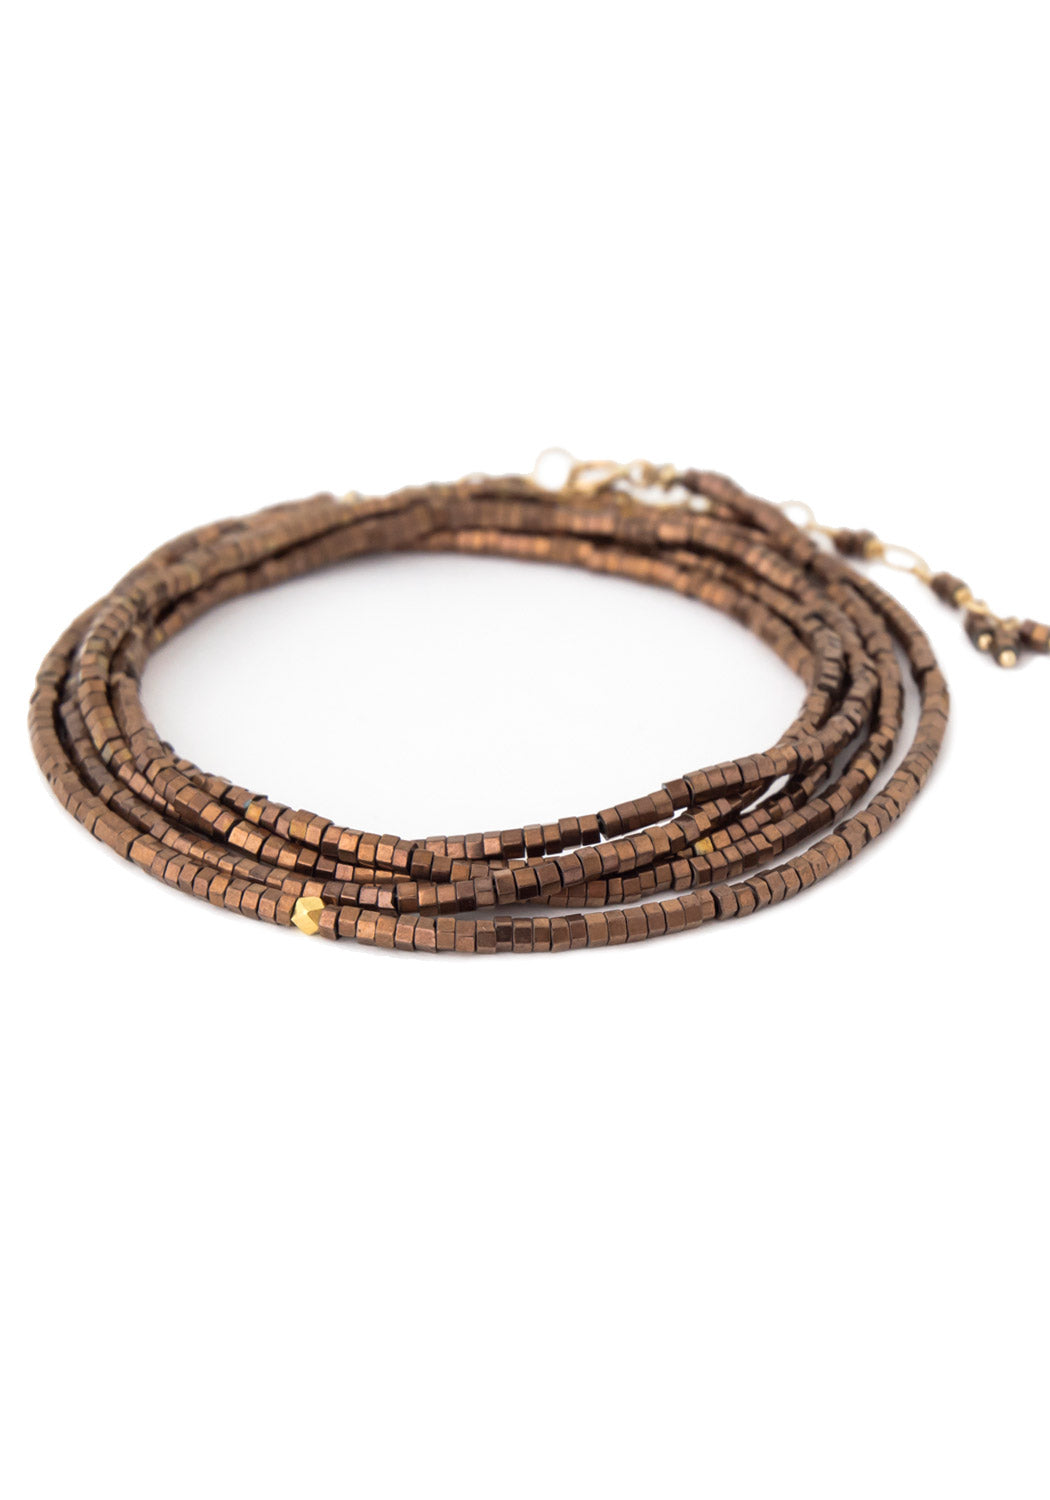 "Anne Sportun 34"" Square Bead Copper Pyrite Wrap Bracelet"